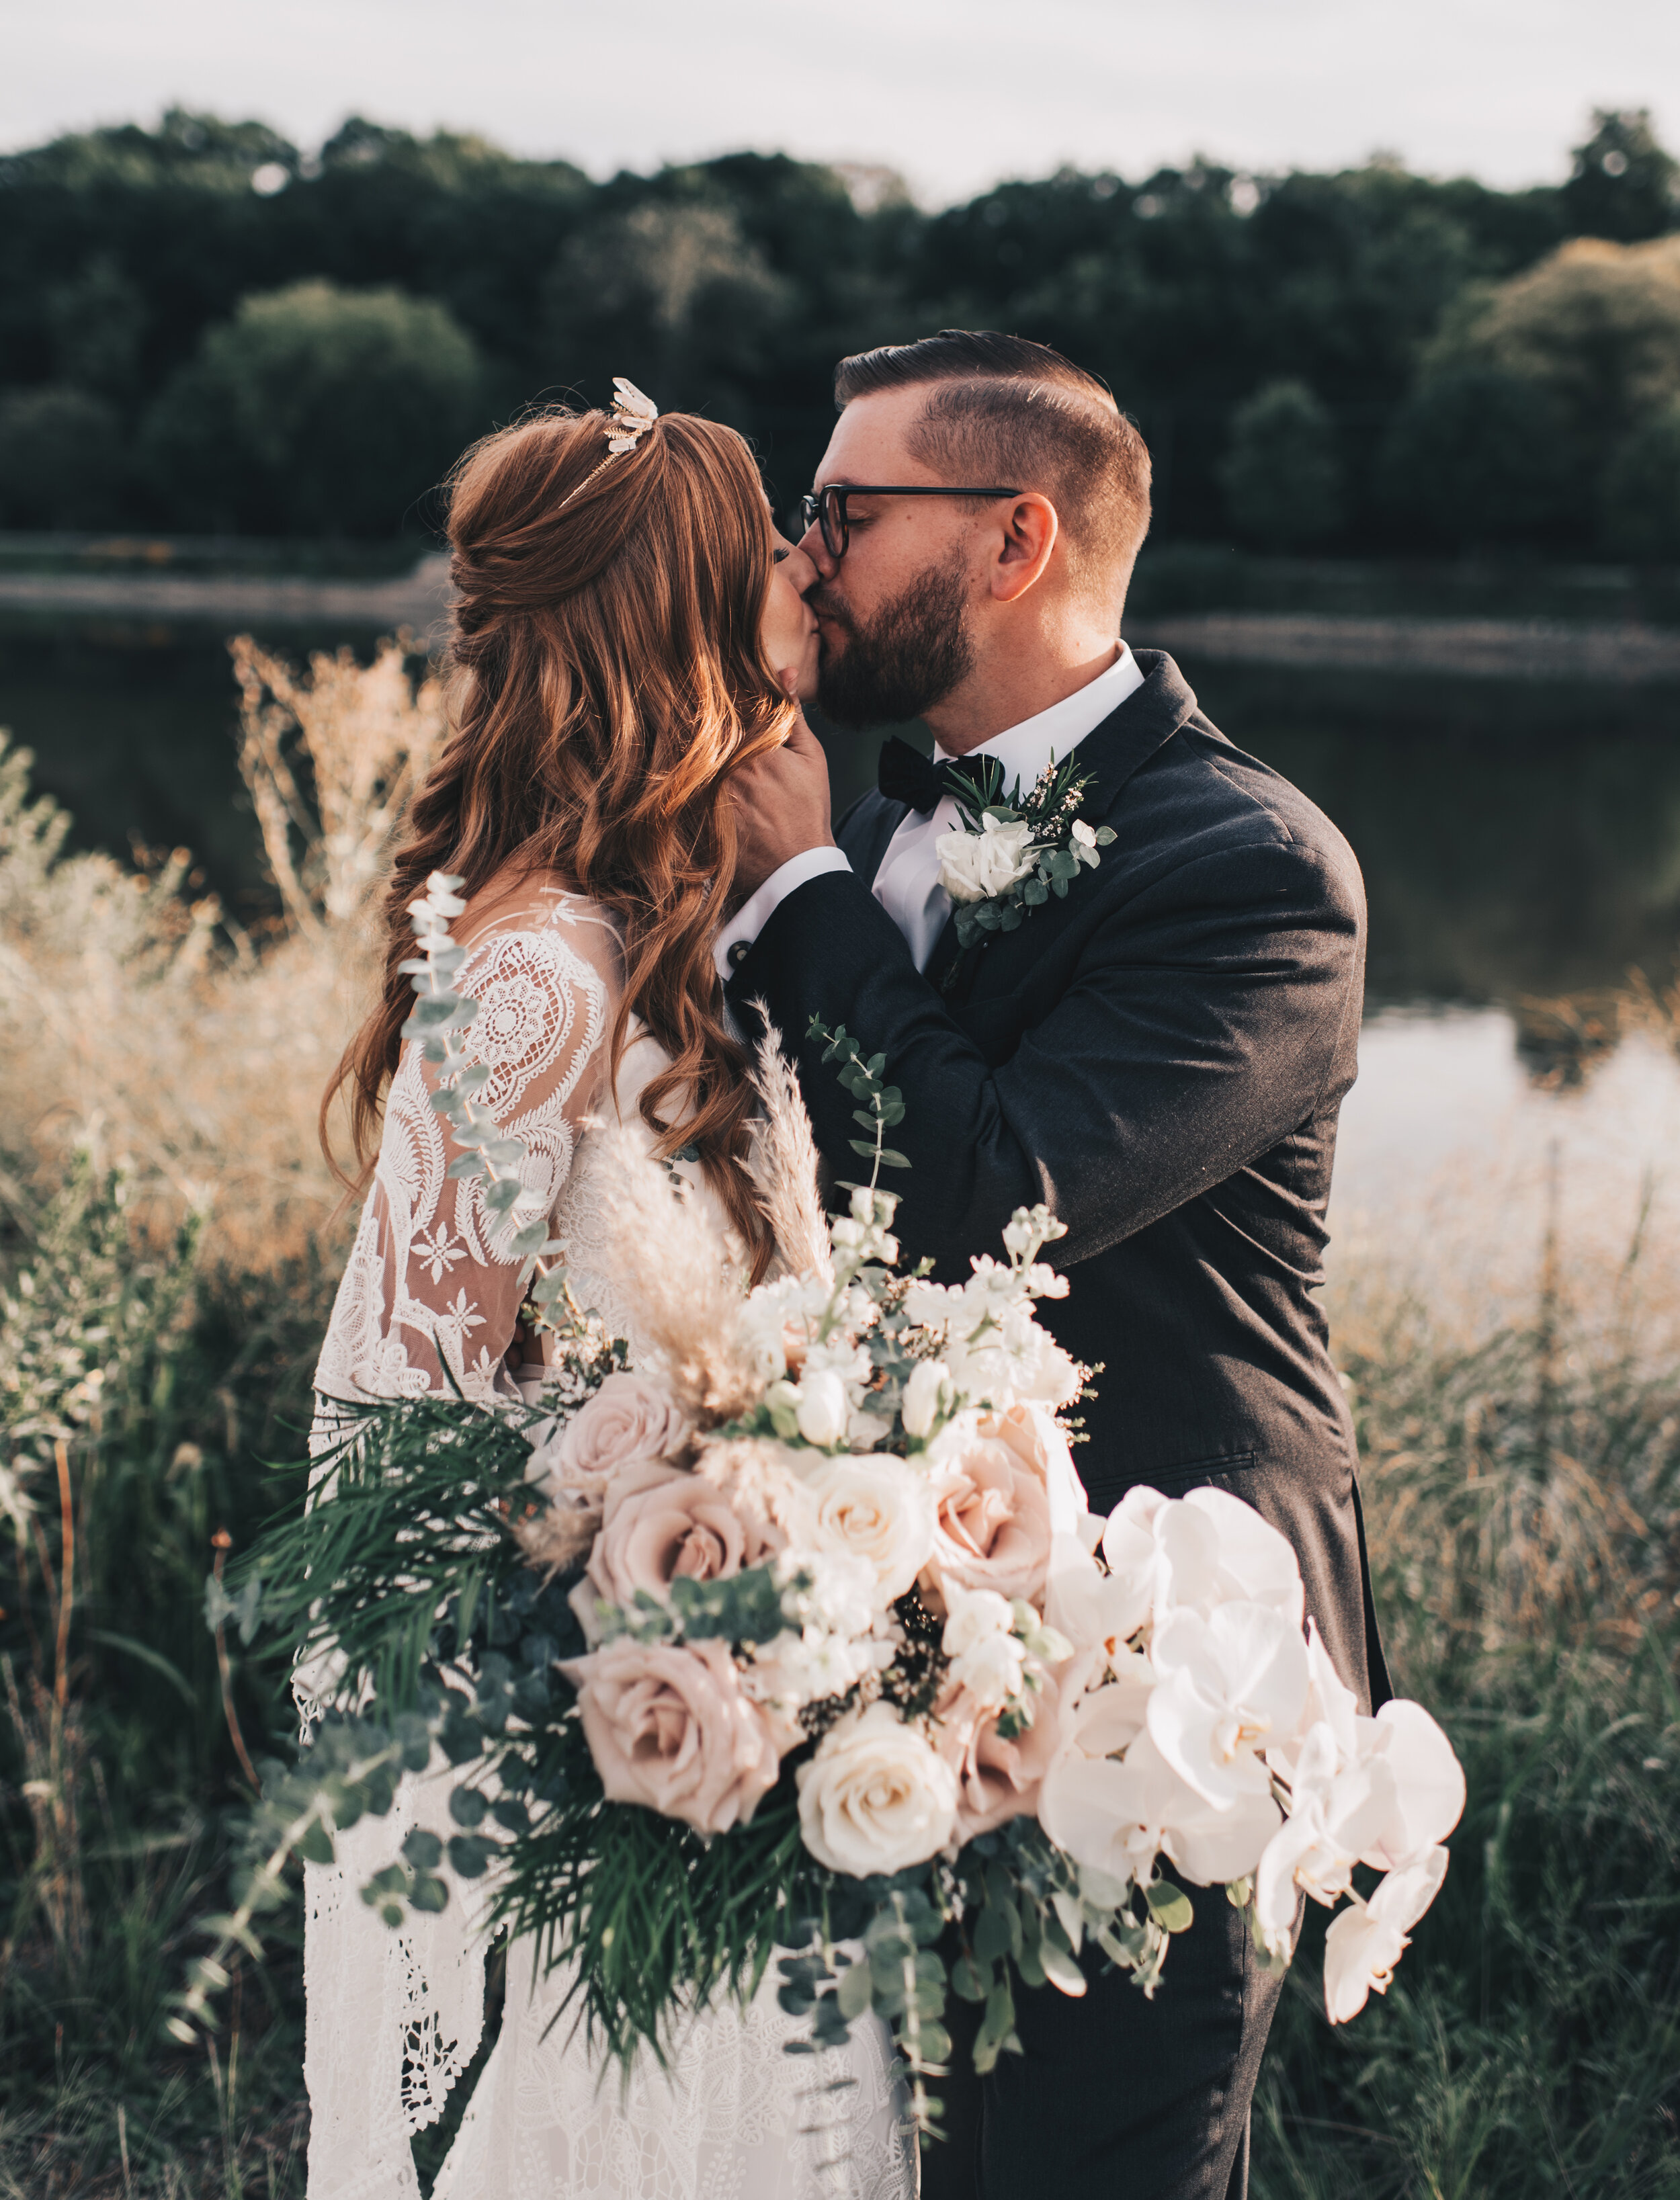 Modern Industrial Wedding, The Brix on the Fox, The BRIX, Chicago Industrial Wedding, Modern Midwest Wedding, The Brix on the Fox Wedding, The BRIX Wedding, Outdoor Boho Bride and Groom Photos